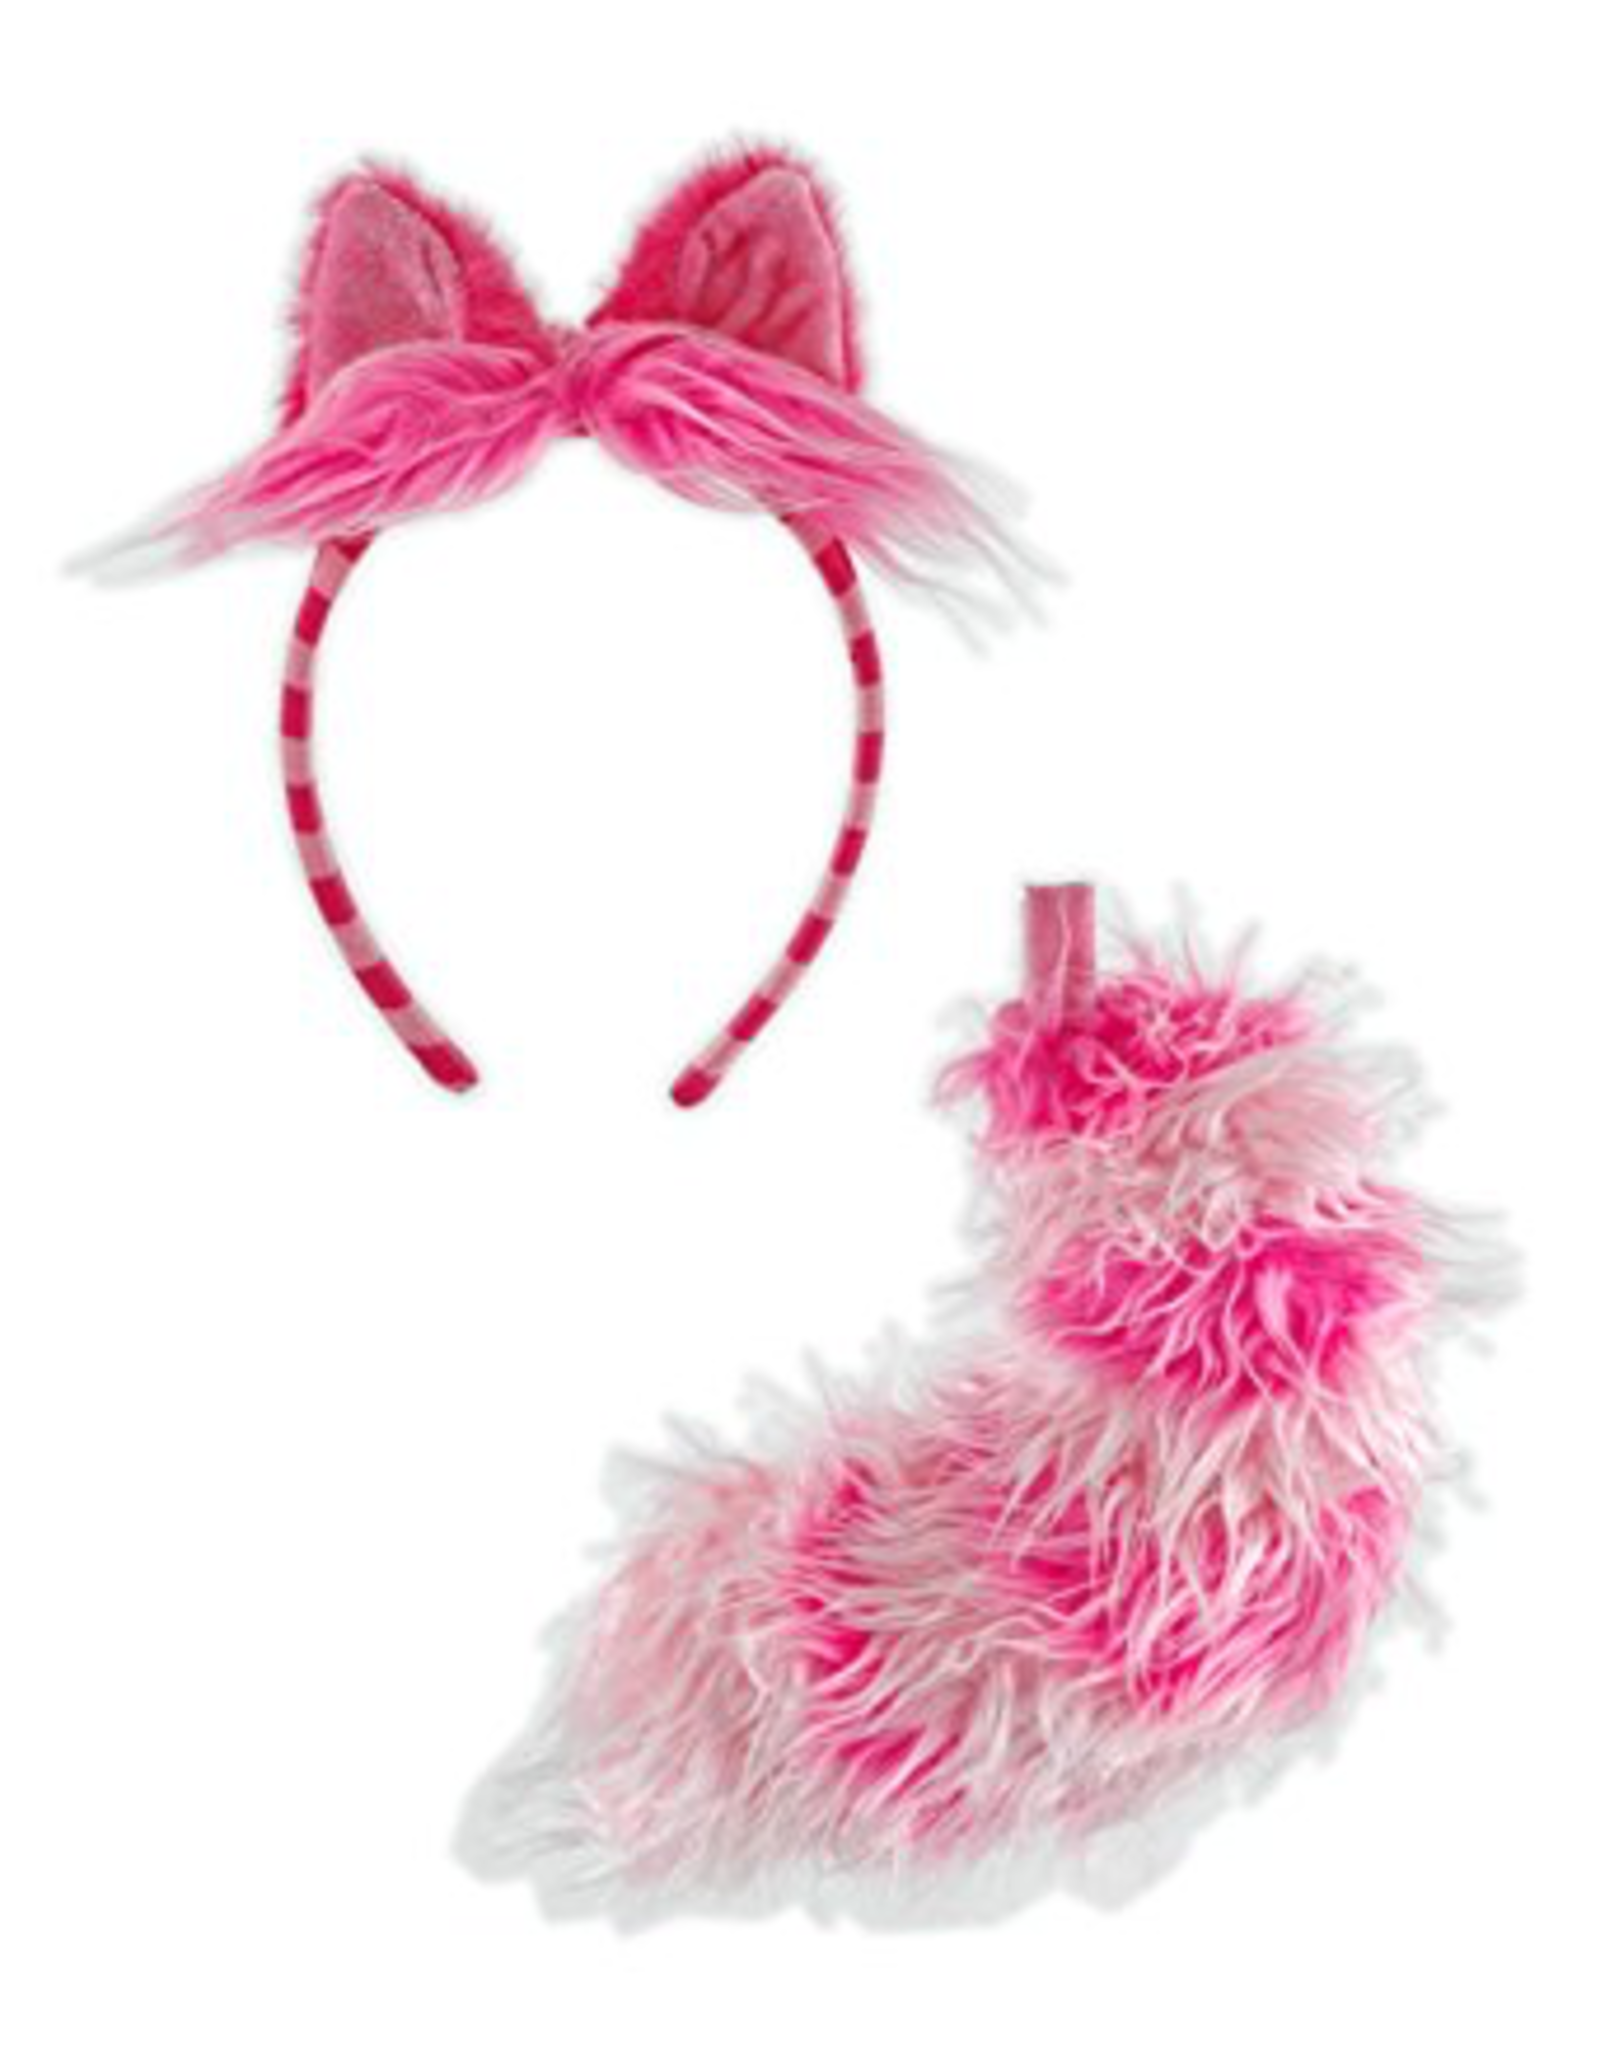 ANIMAL SET-CHESHIRE CAT-EARS & TAIL, DKPINK